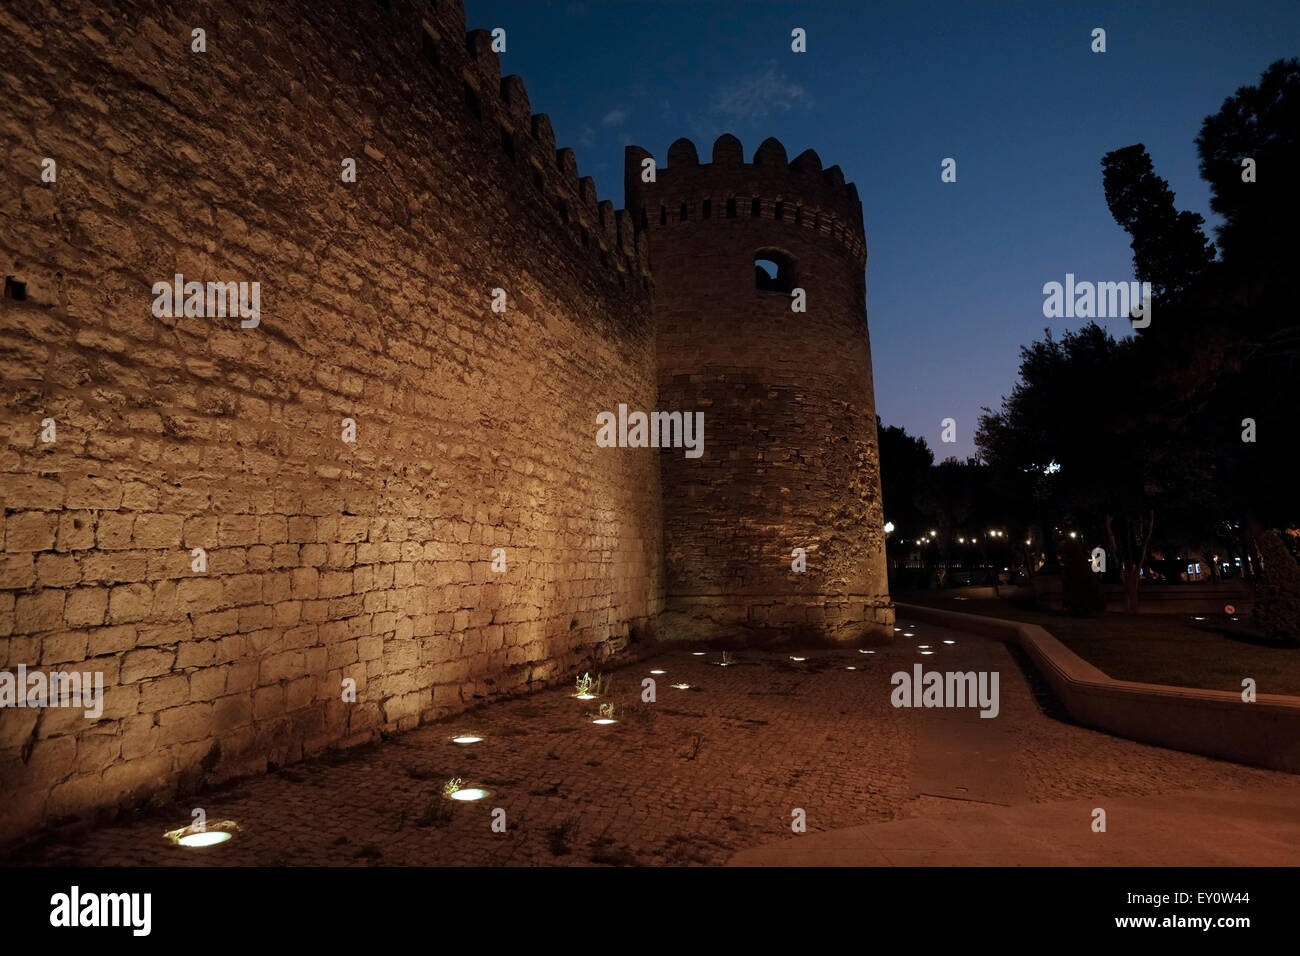 Ancient walls illuminated at night in Icheri Sheher which is the historical core of Baku listed in UNESCO World - Stock Image